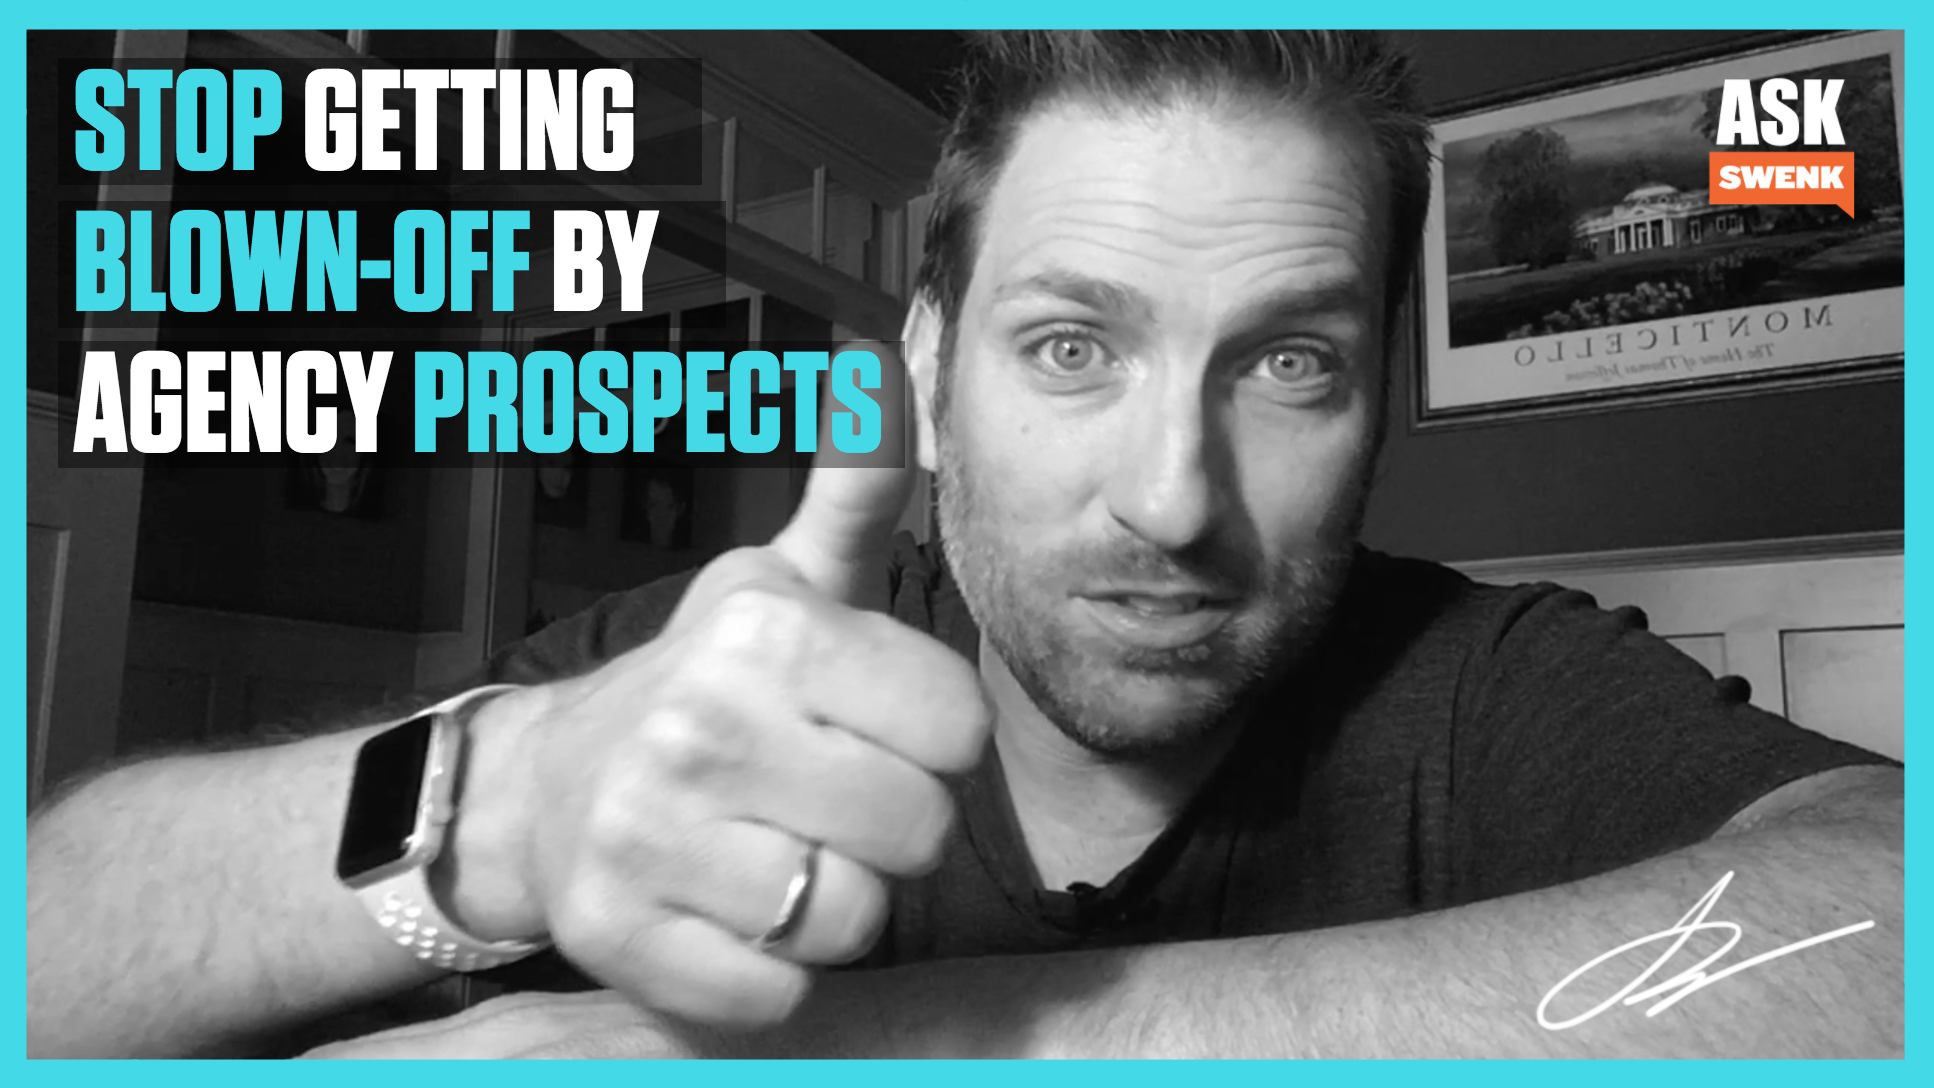 Agency Prospects: How to Stop Getting Your Proposal Blown-Off